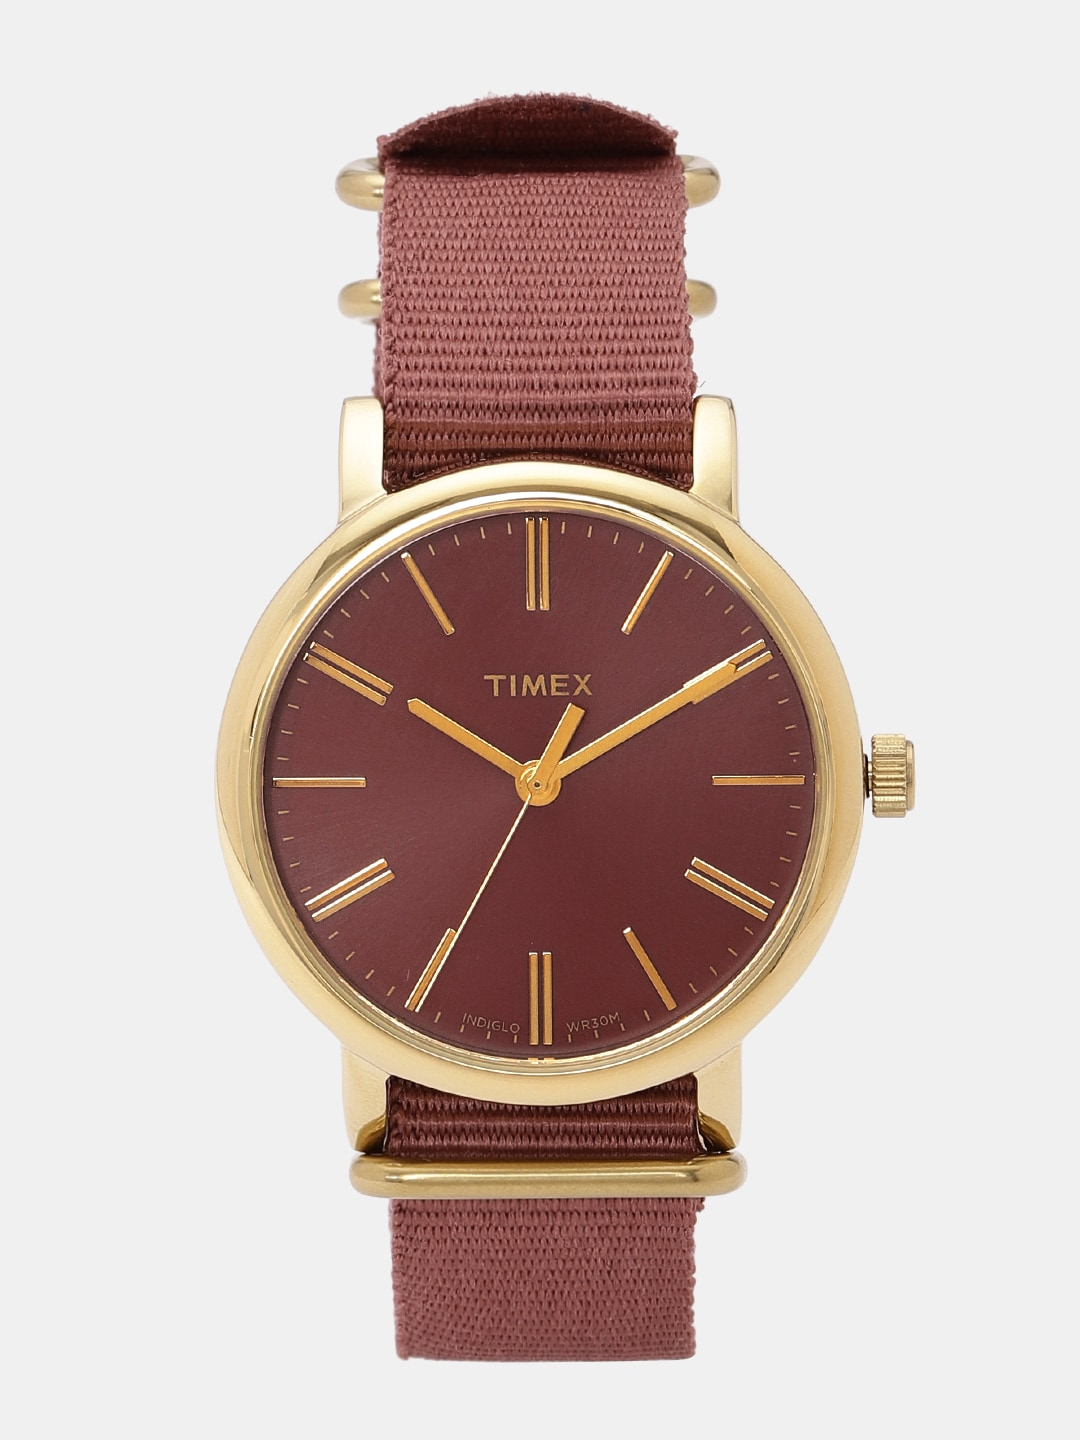 034254b03a7 Timex Watches - Buy Genuine Timex Watch Online In India